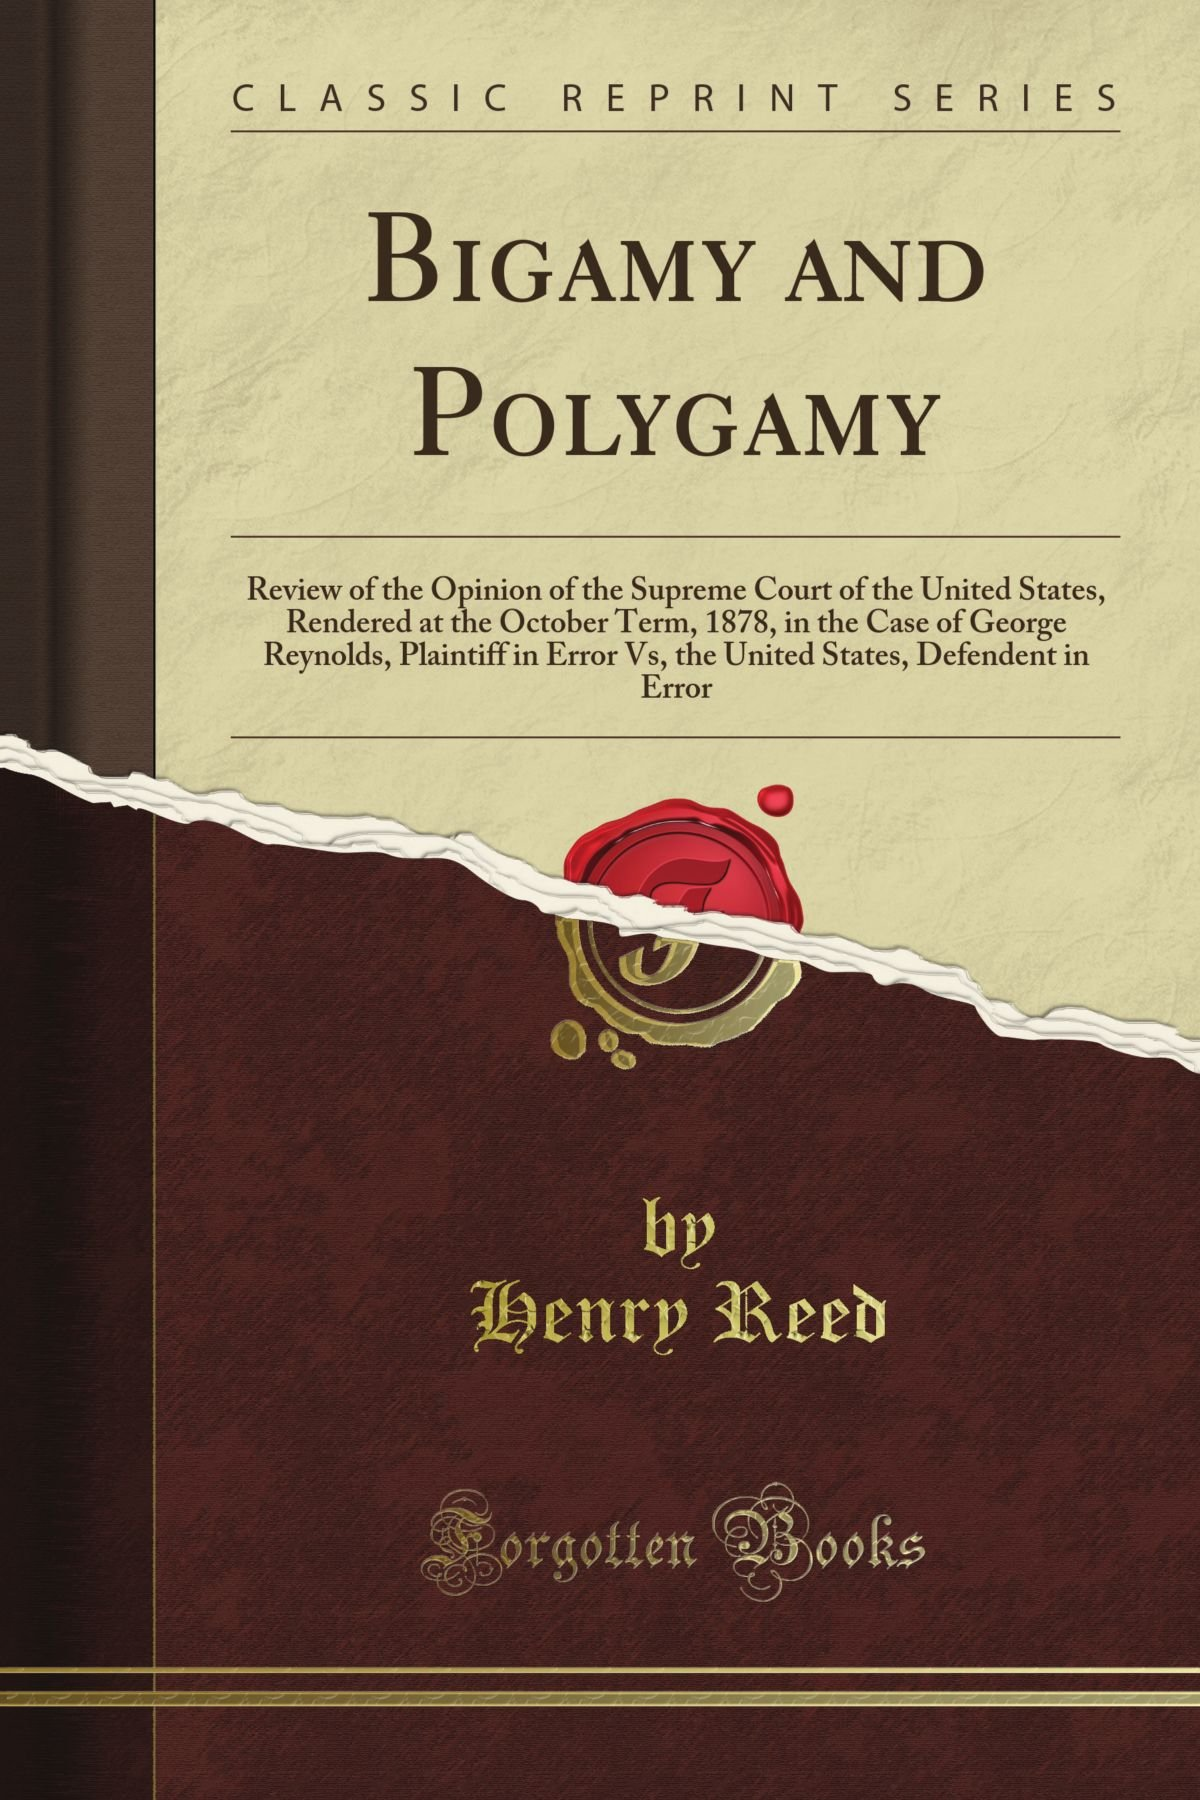 Bigamy and Polygamy: Review of the Opinion of the Supreme Court of the United States, Rendered at the October Term, 1878, in the Case of George ... States, Defendent in Error (Classic Reprint) PDF